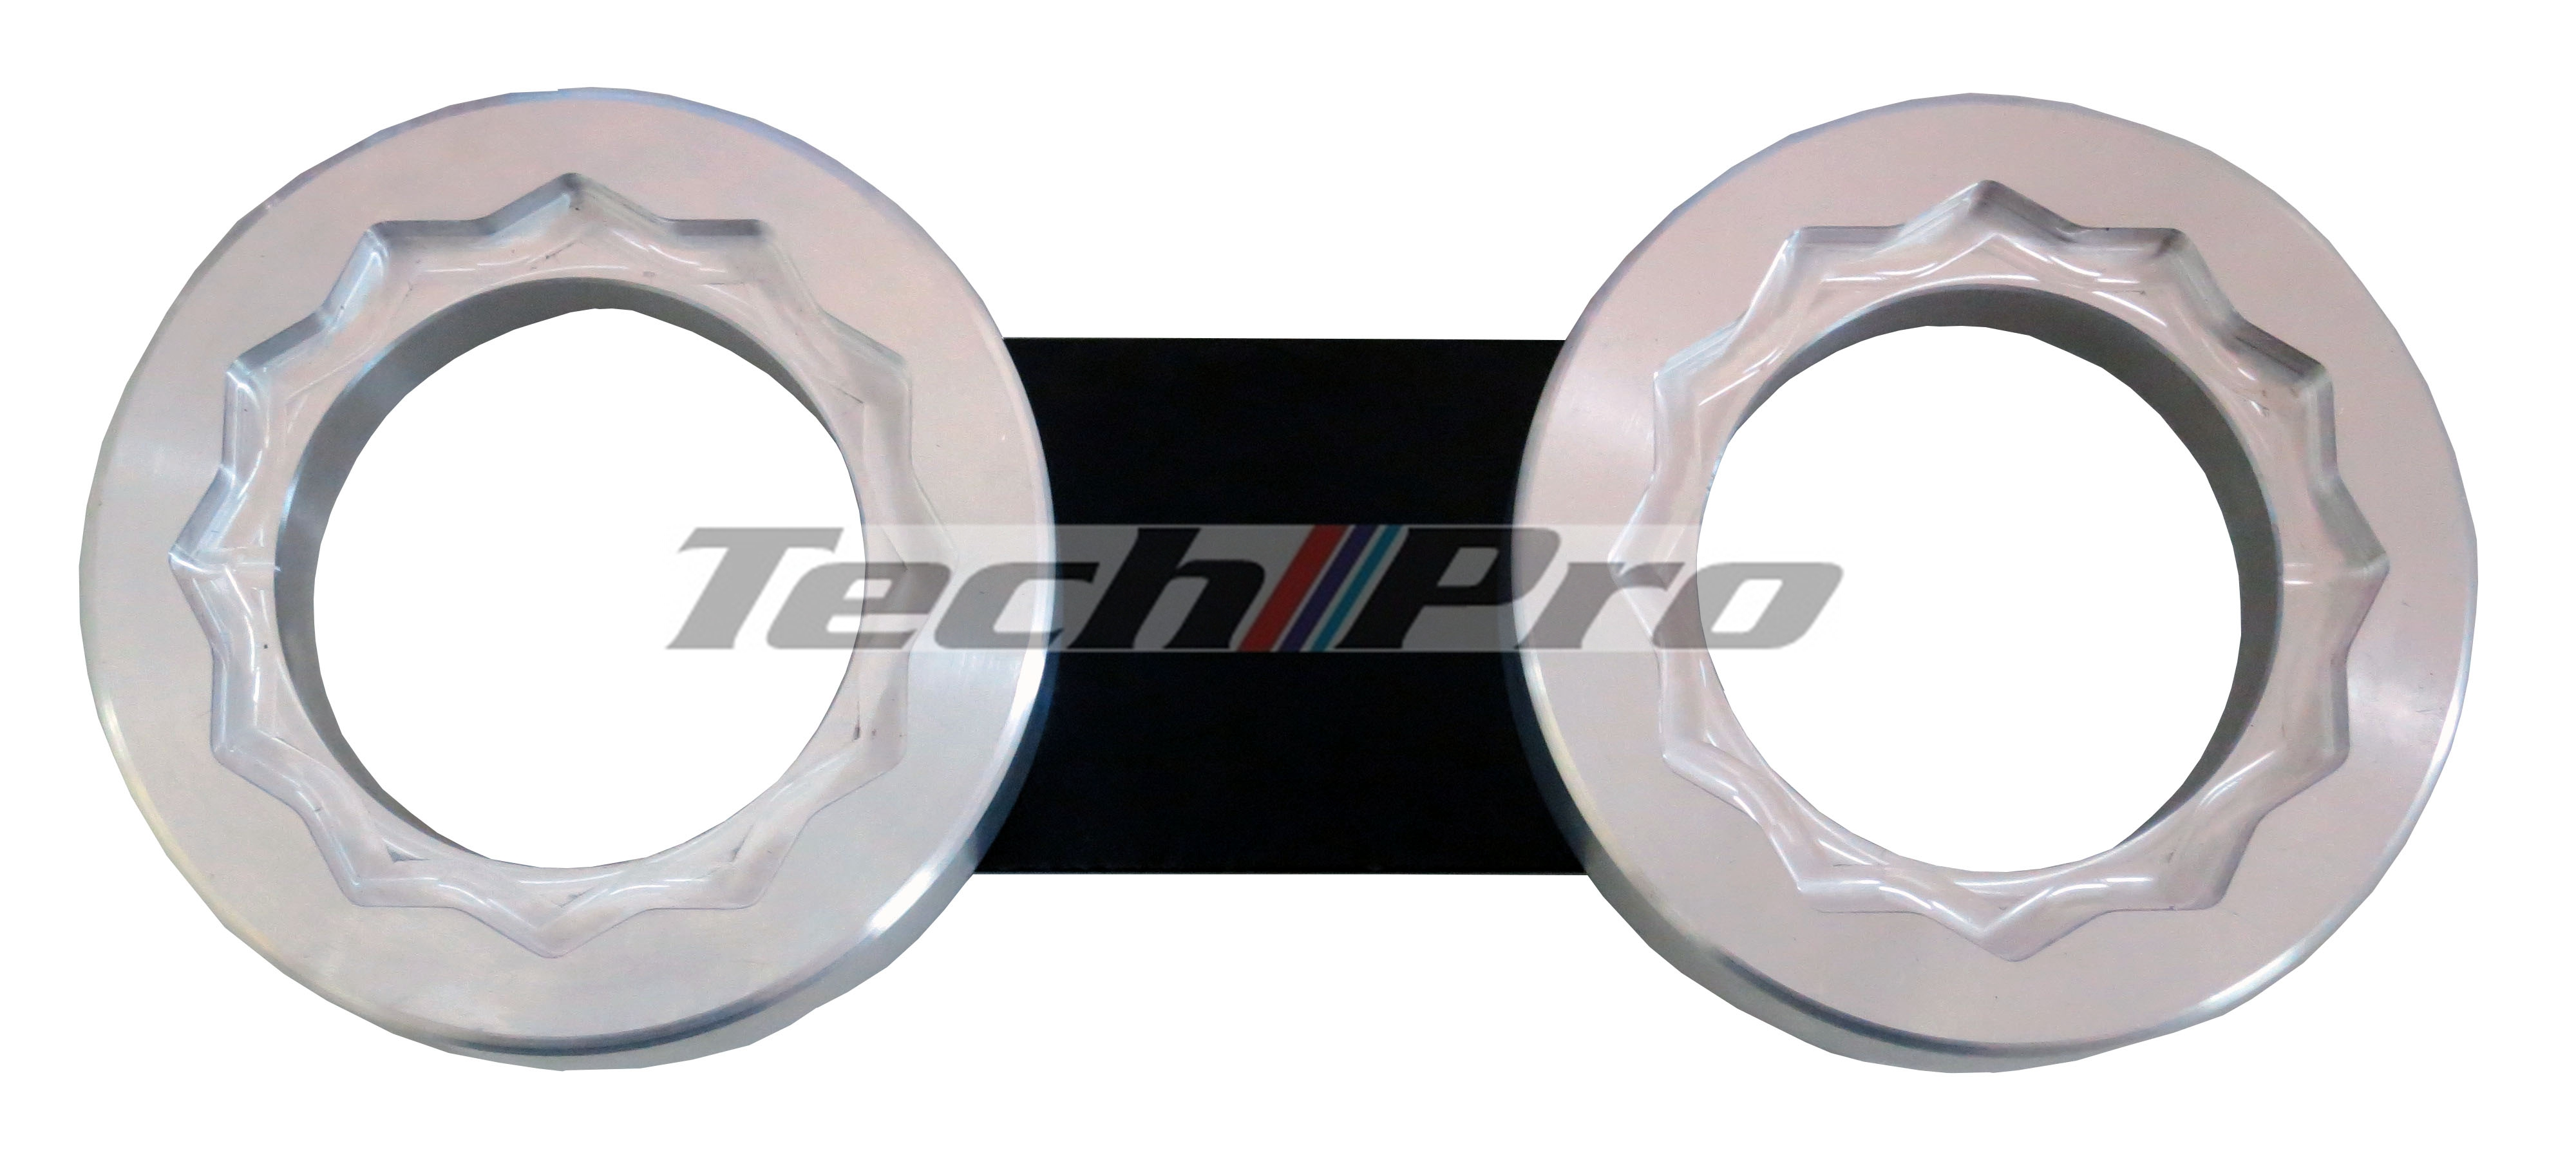 SU-010 Subaru -Twin Cam Pulley Holder 6 & 12 Points Type